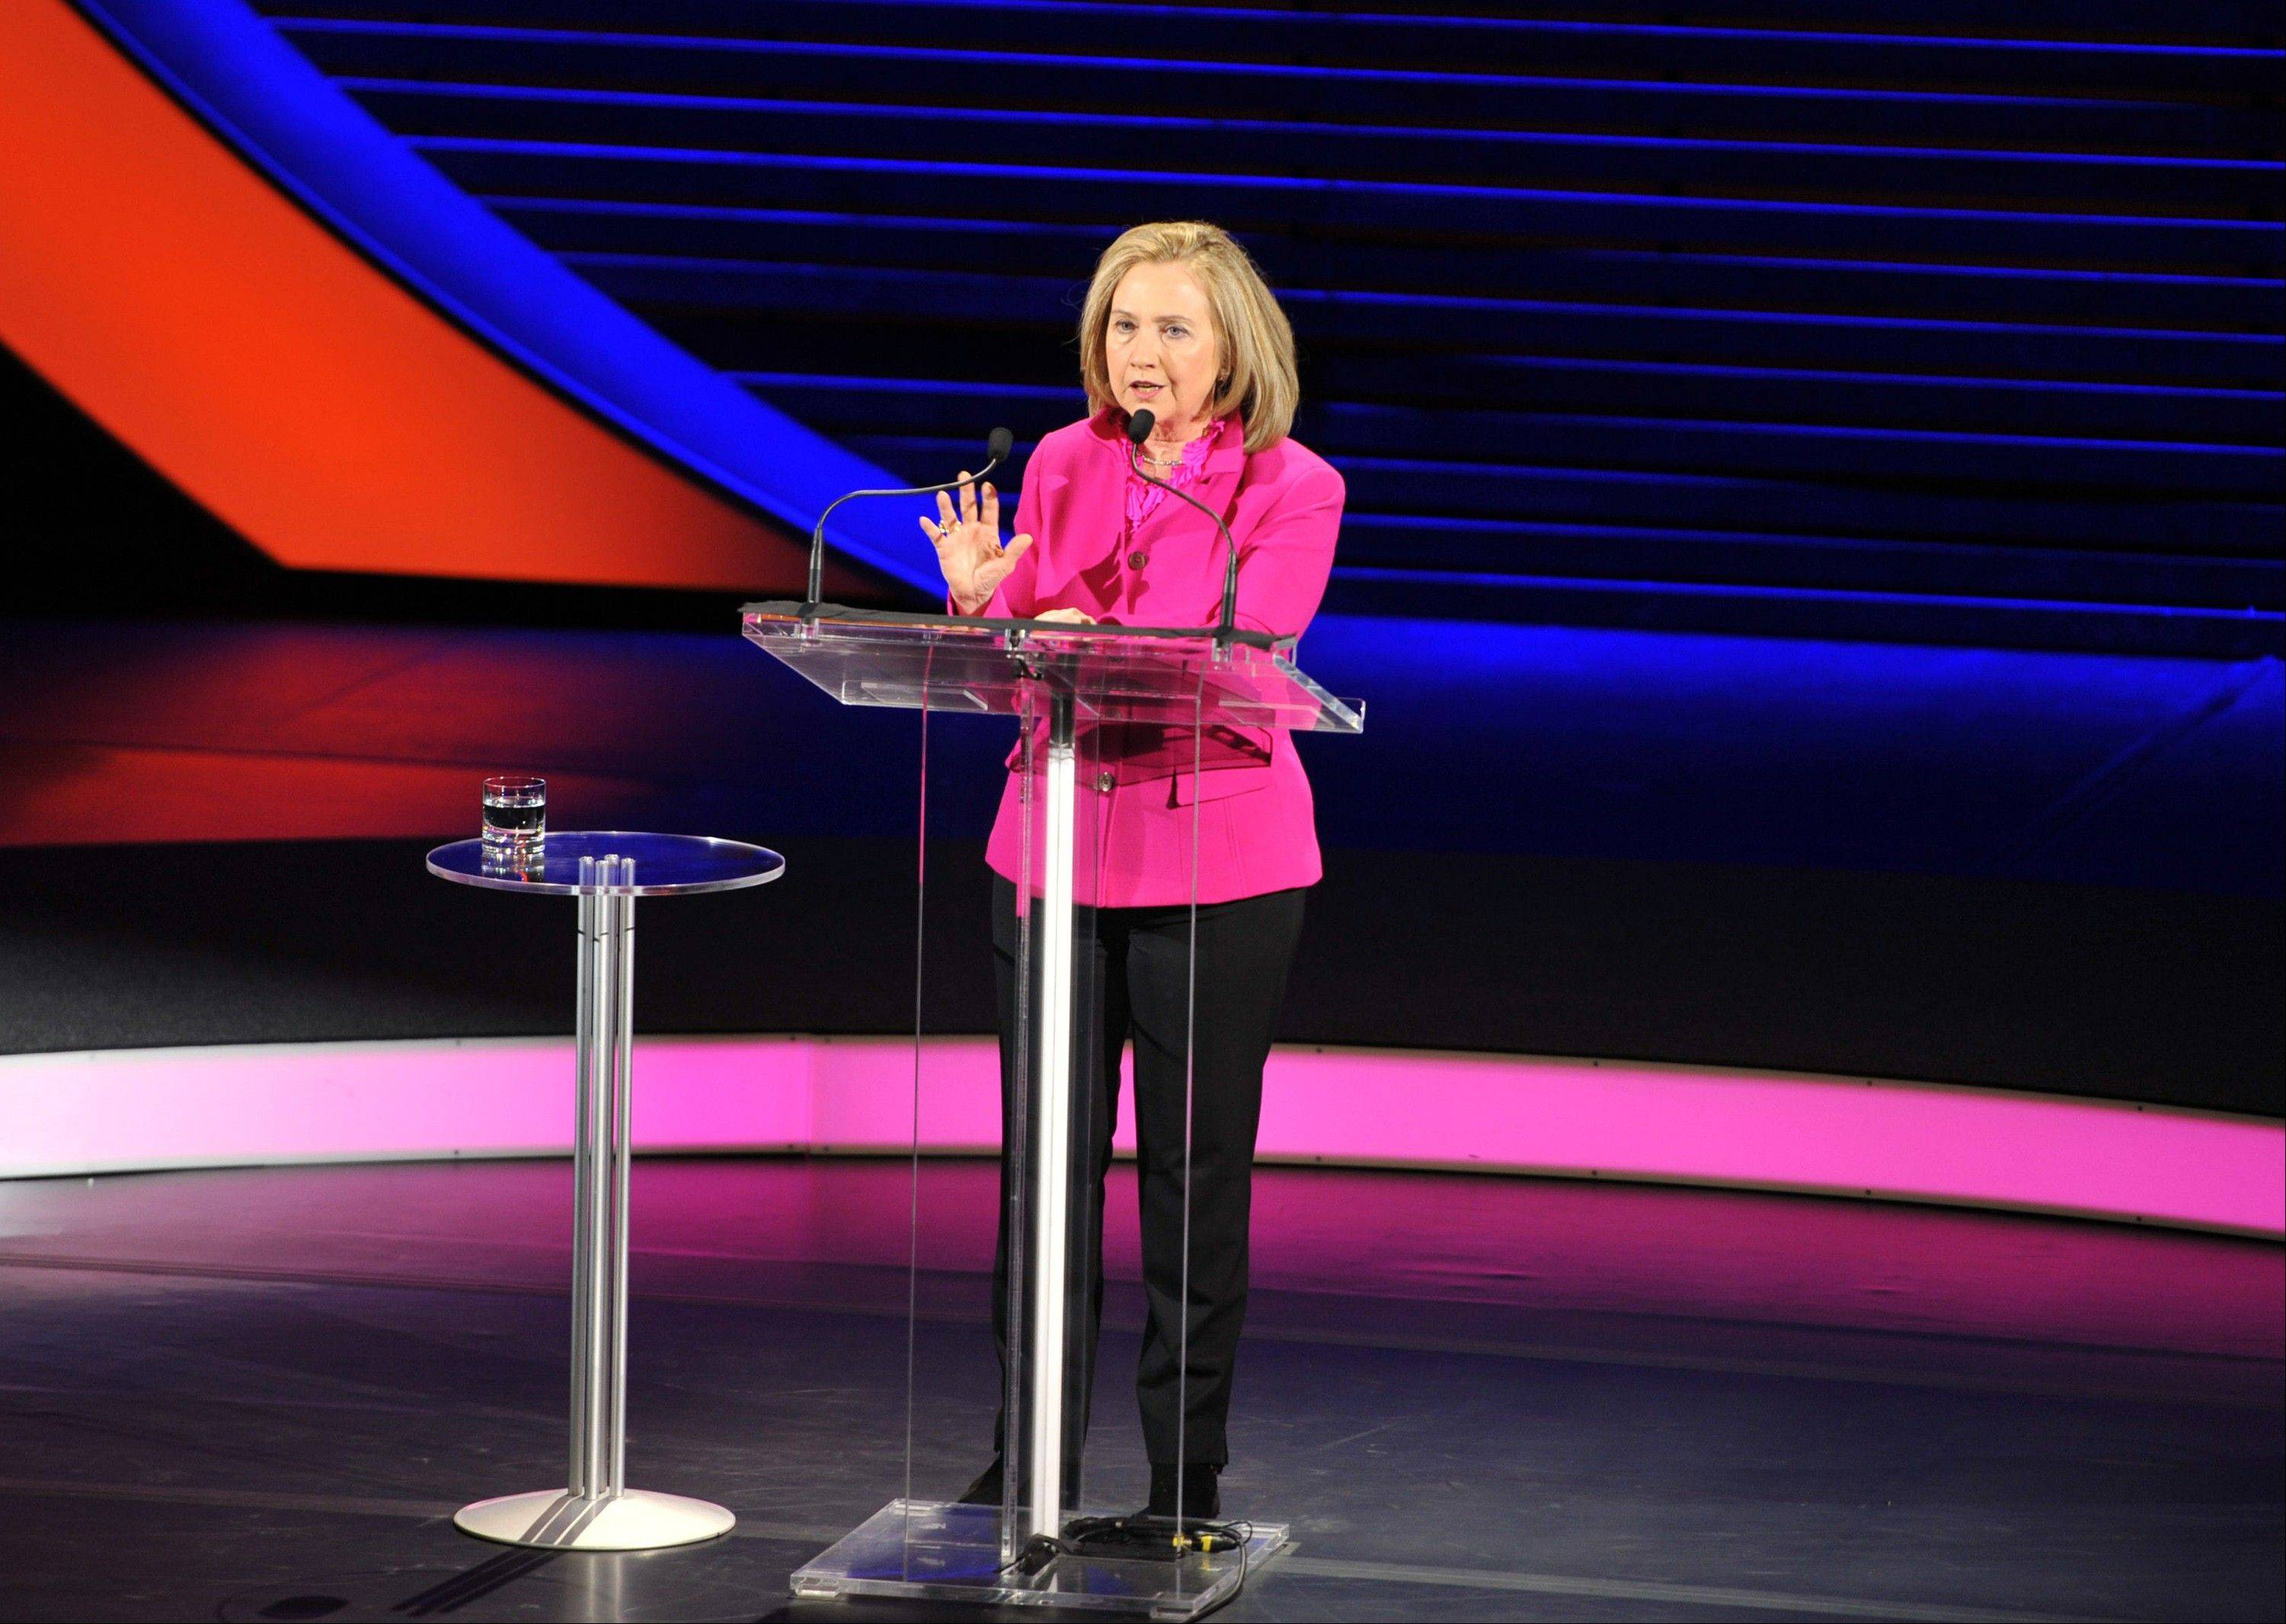 This image released by Women in the World shows former Secretary of State Hillary Rodham Clinton speaking at the Women in the World Conference on Friday, April 5, in New York. Clinton is getting plenty of encouragement to run for president in 2016. Her re-emergence this past week after a two-month break brought out cheering supporters when she gave speeches focused on the issues of women and girls around the world.